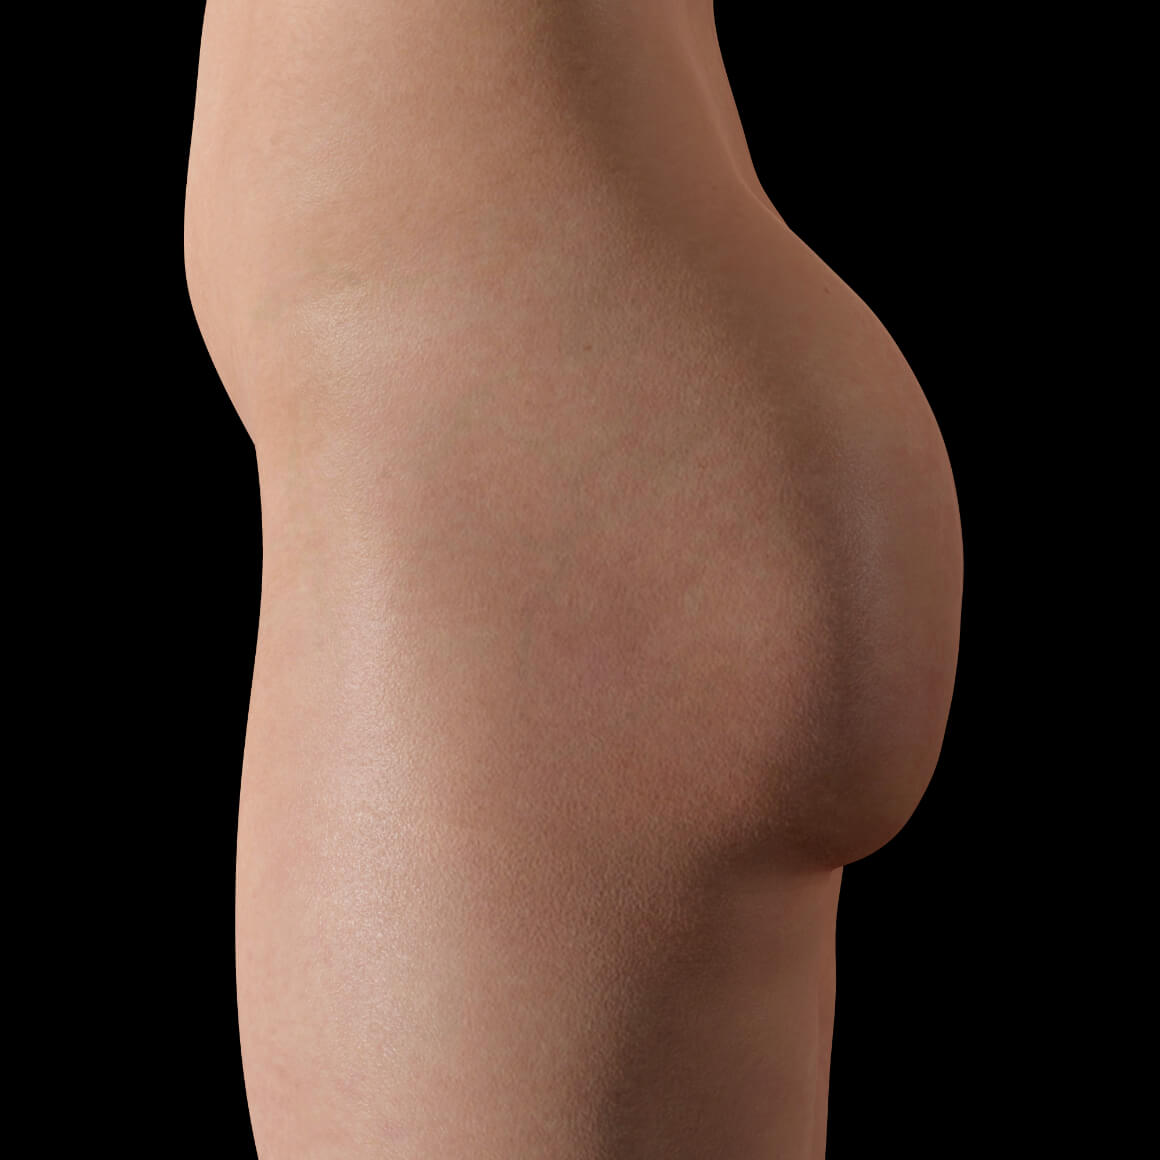 Female patient from Clinique Chloé positioned sideways after Sculptra injections in the buttocks for cellulite treatment